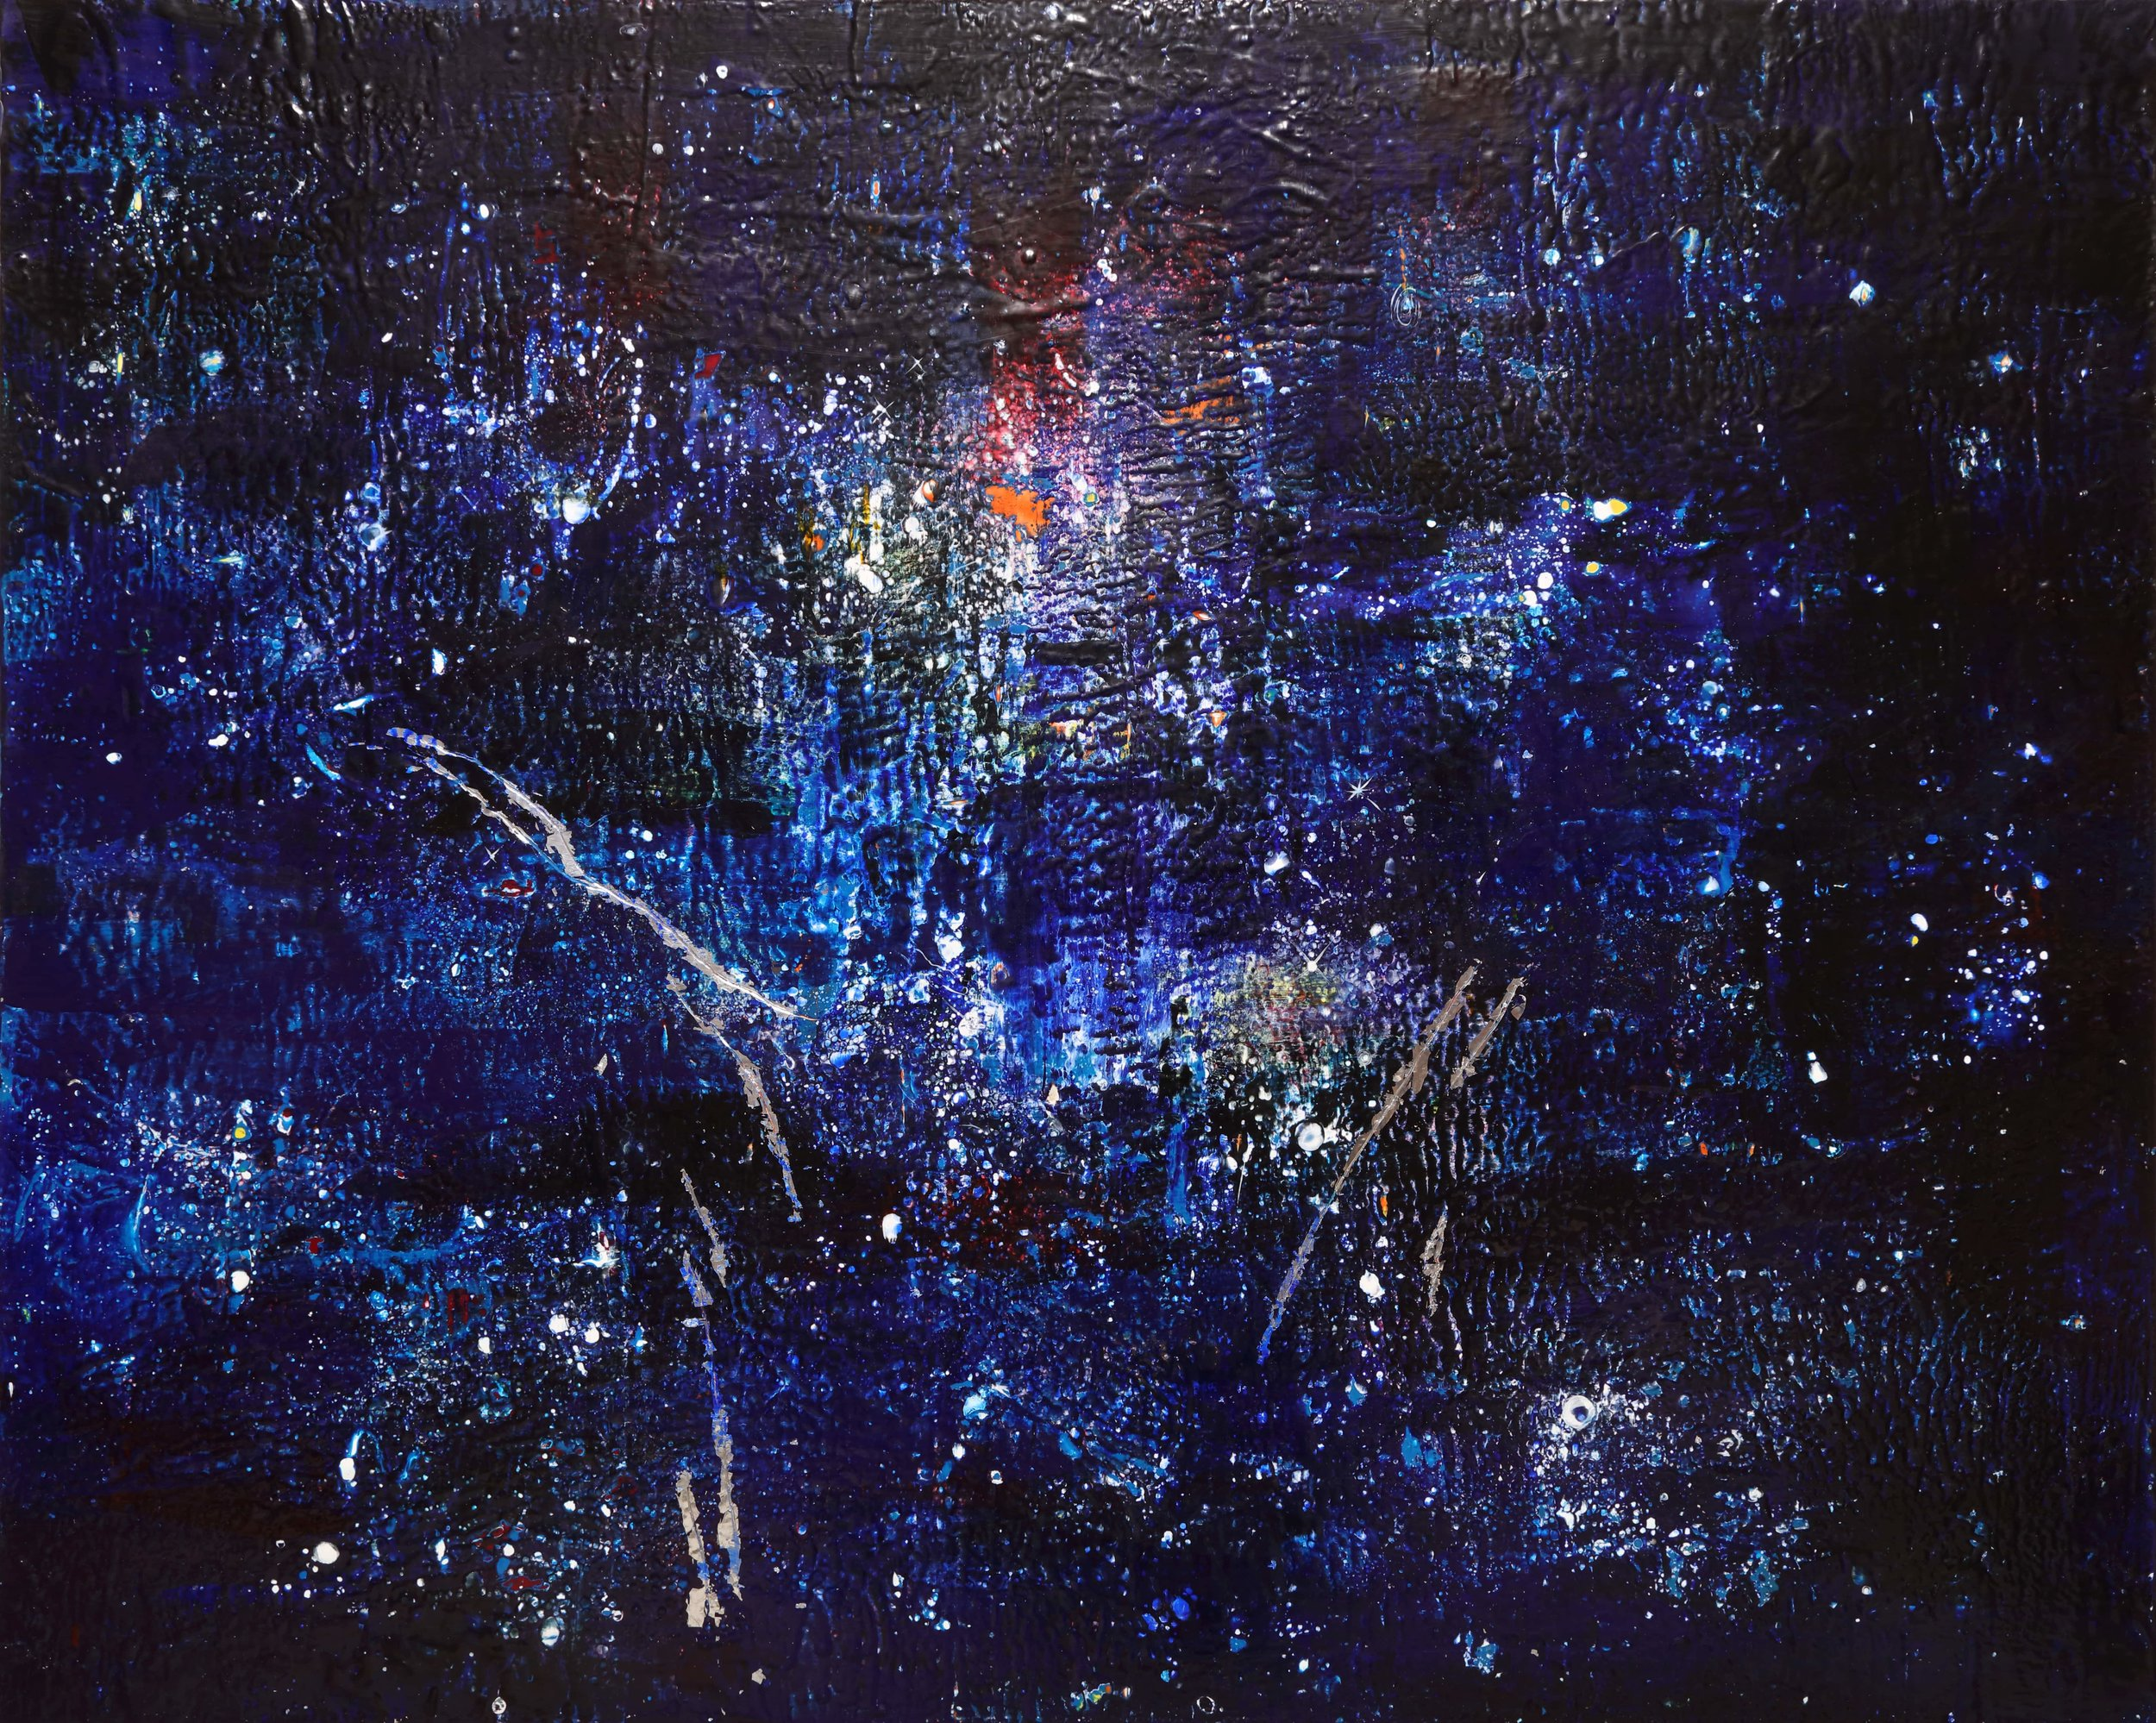 Dark Nebula  , 2018 Encaustic and mixed media on wood panel 48 x 60 x 3 in.